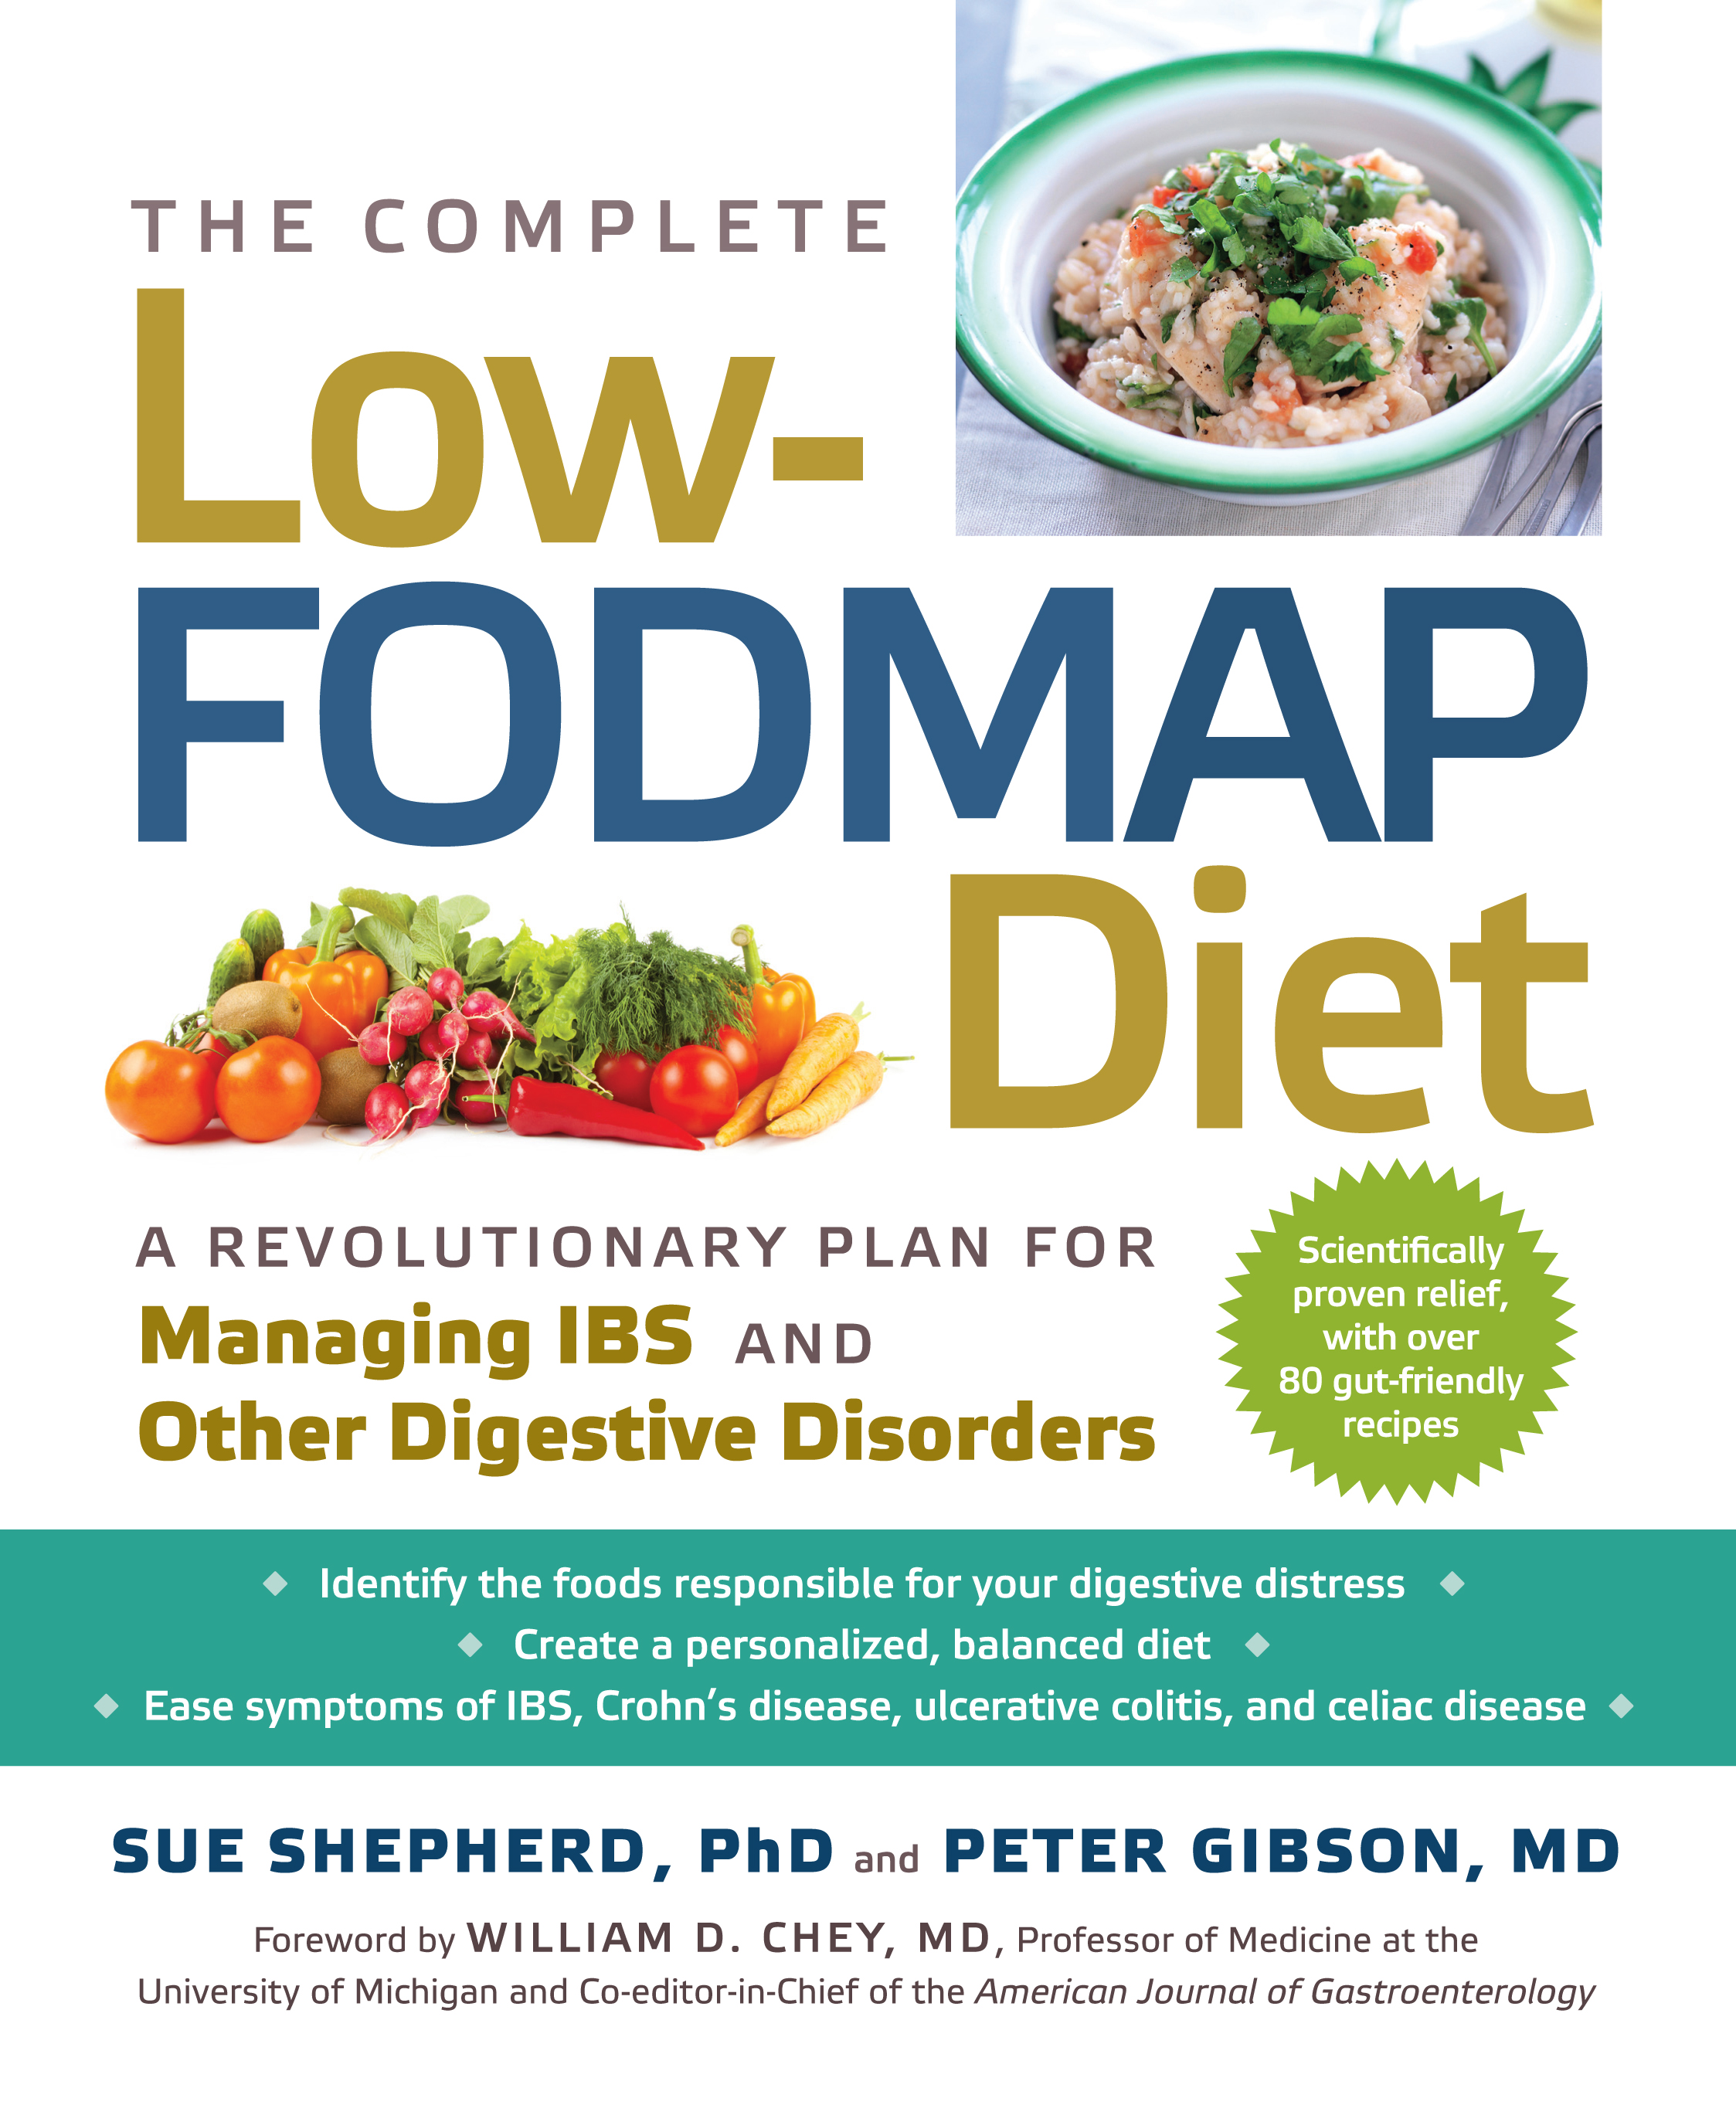 Susan Powell Libros The Low Fodmap Diet Series A Revolutionary Plan For